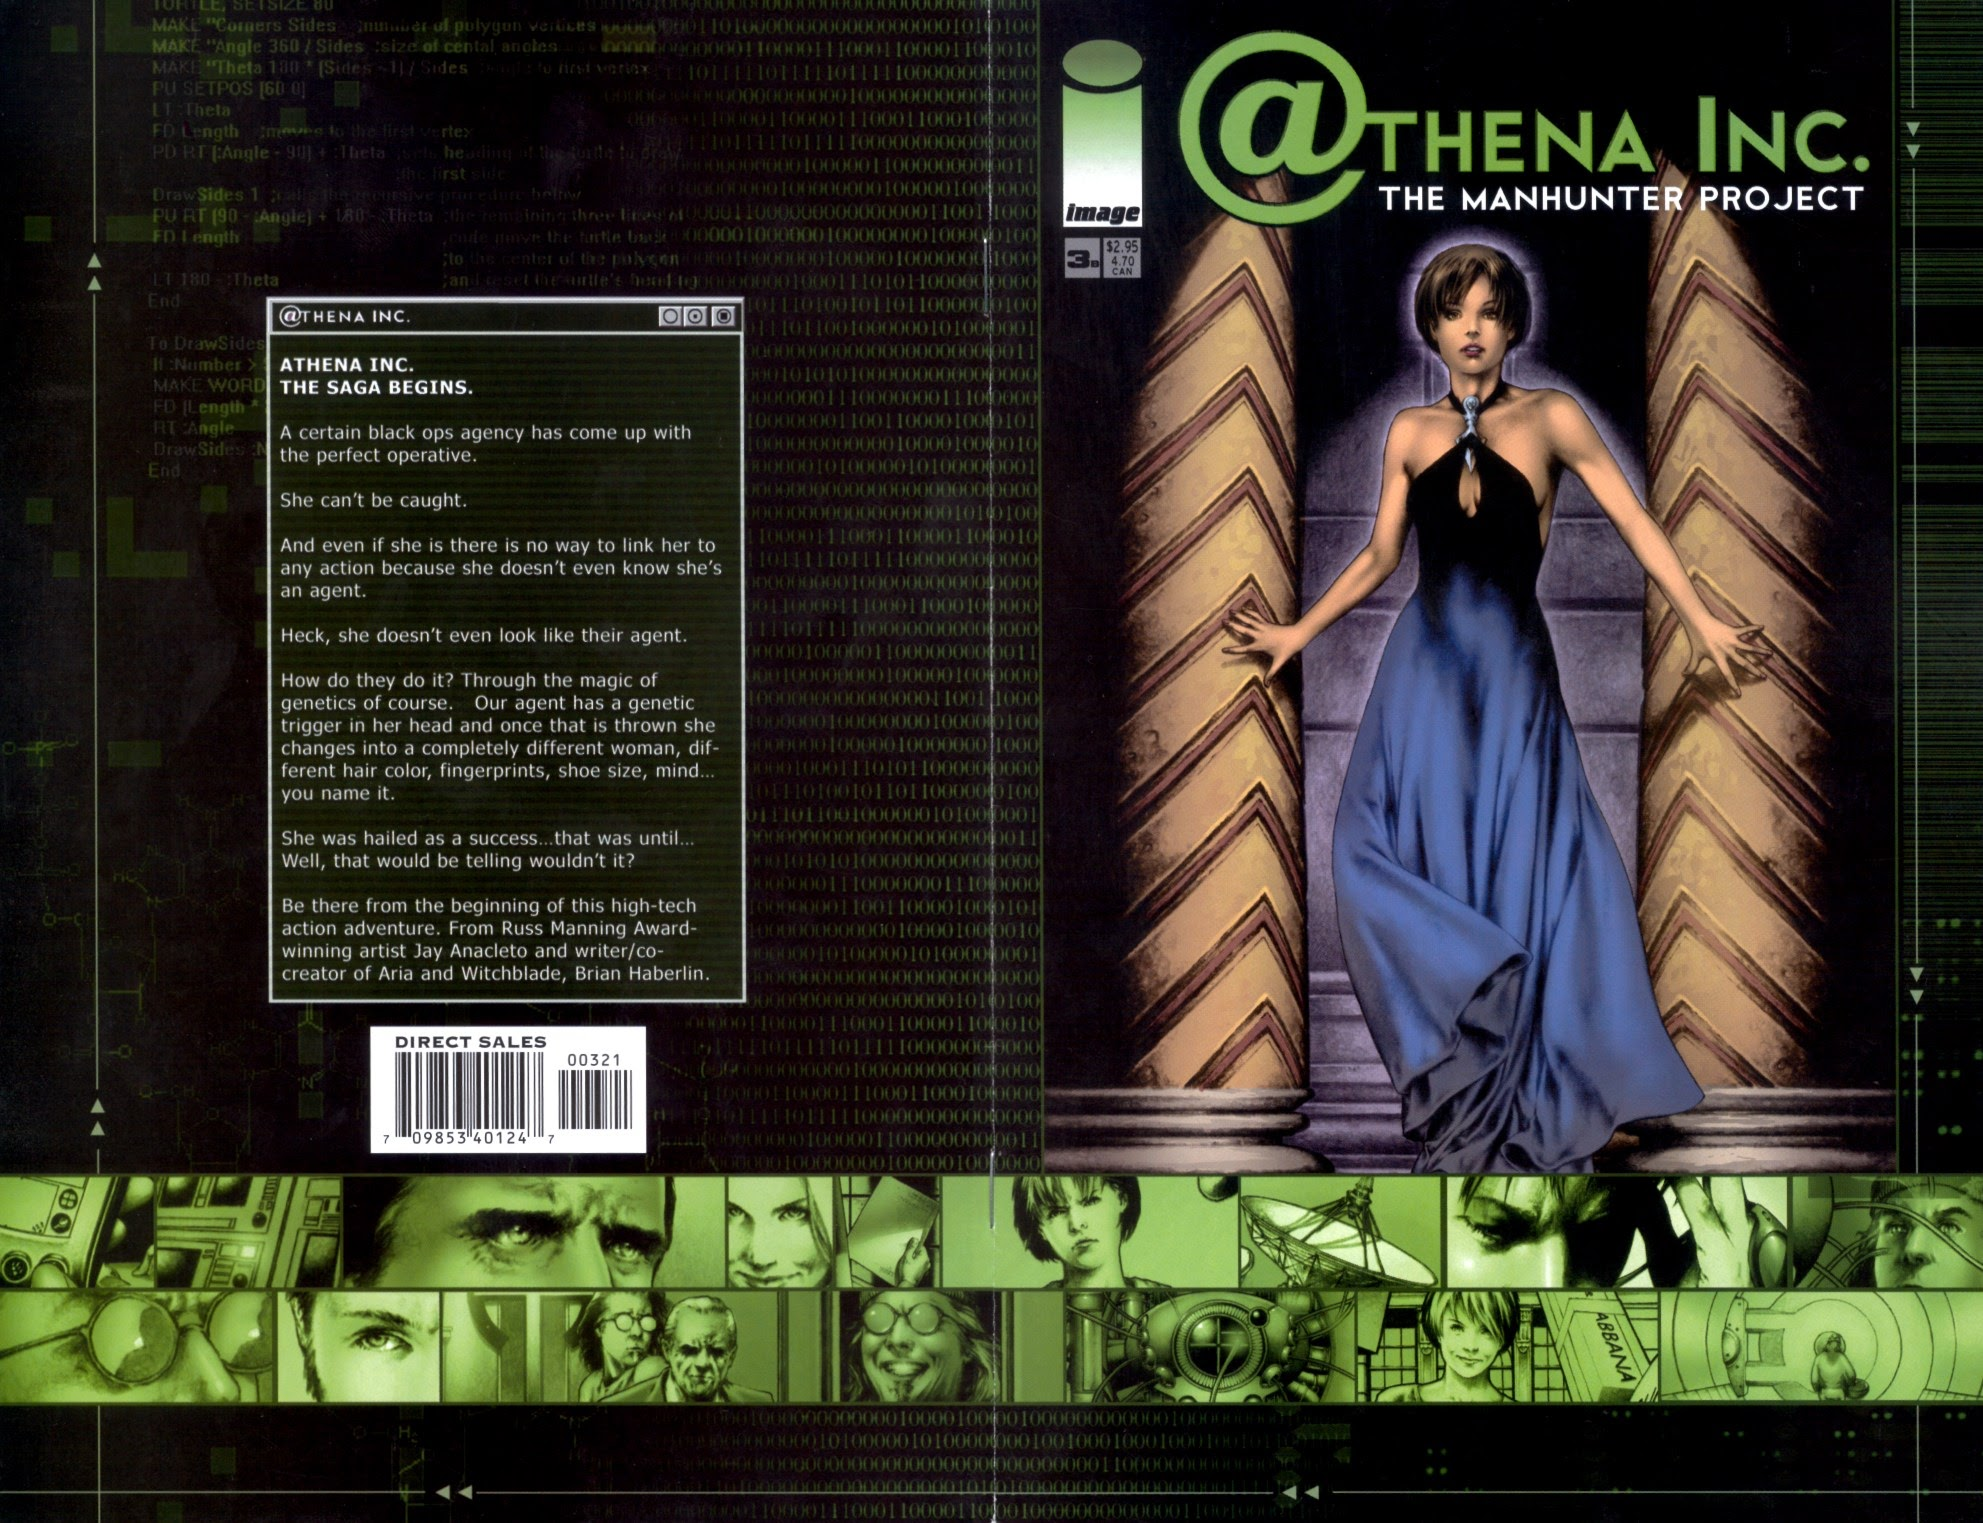 Athena Inc. The Manhunter Project 3 Page 1